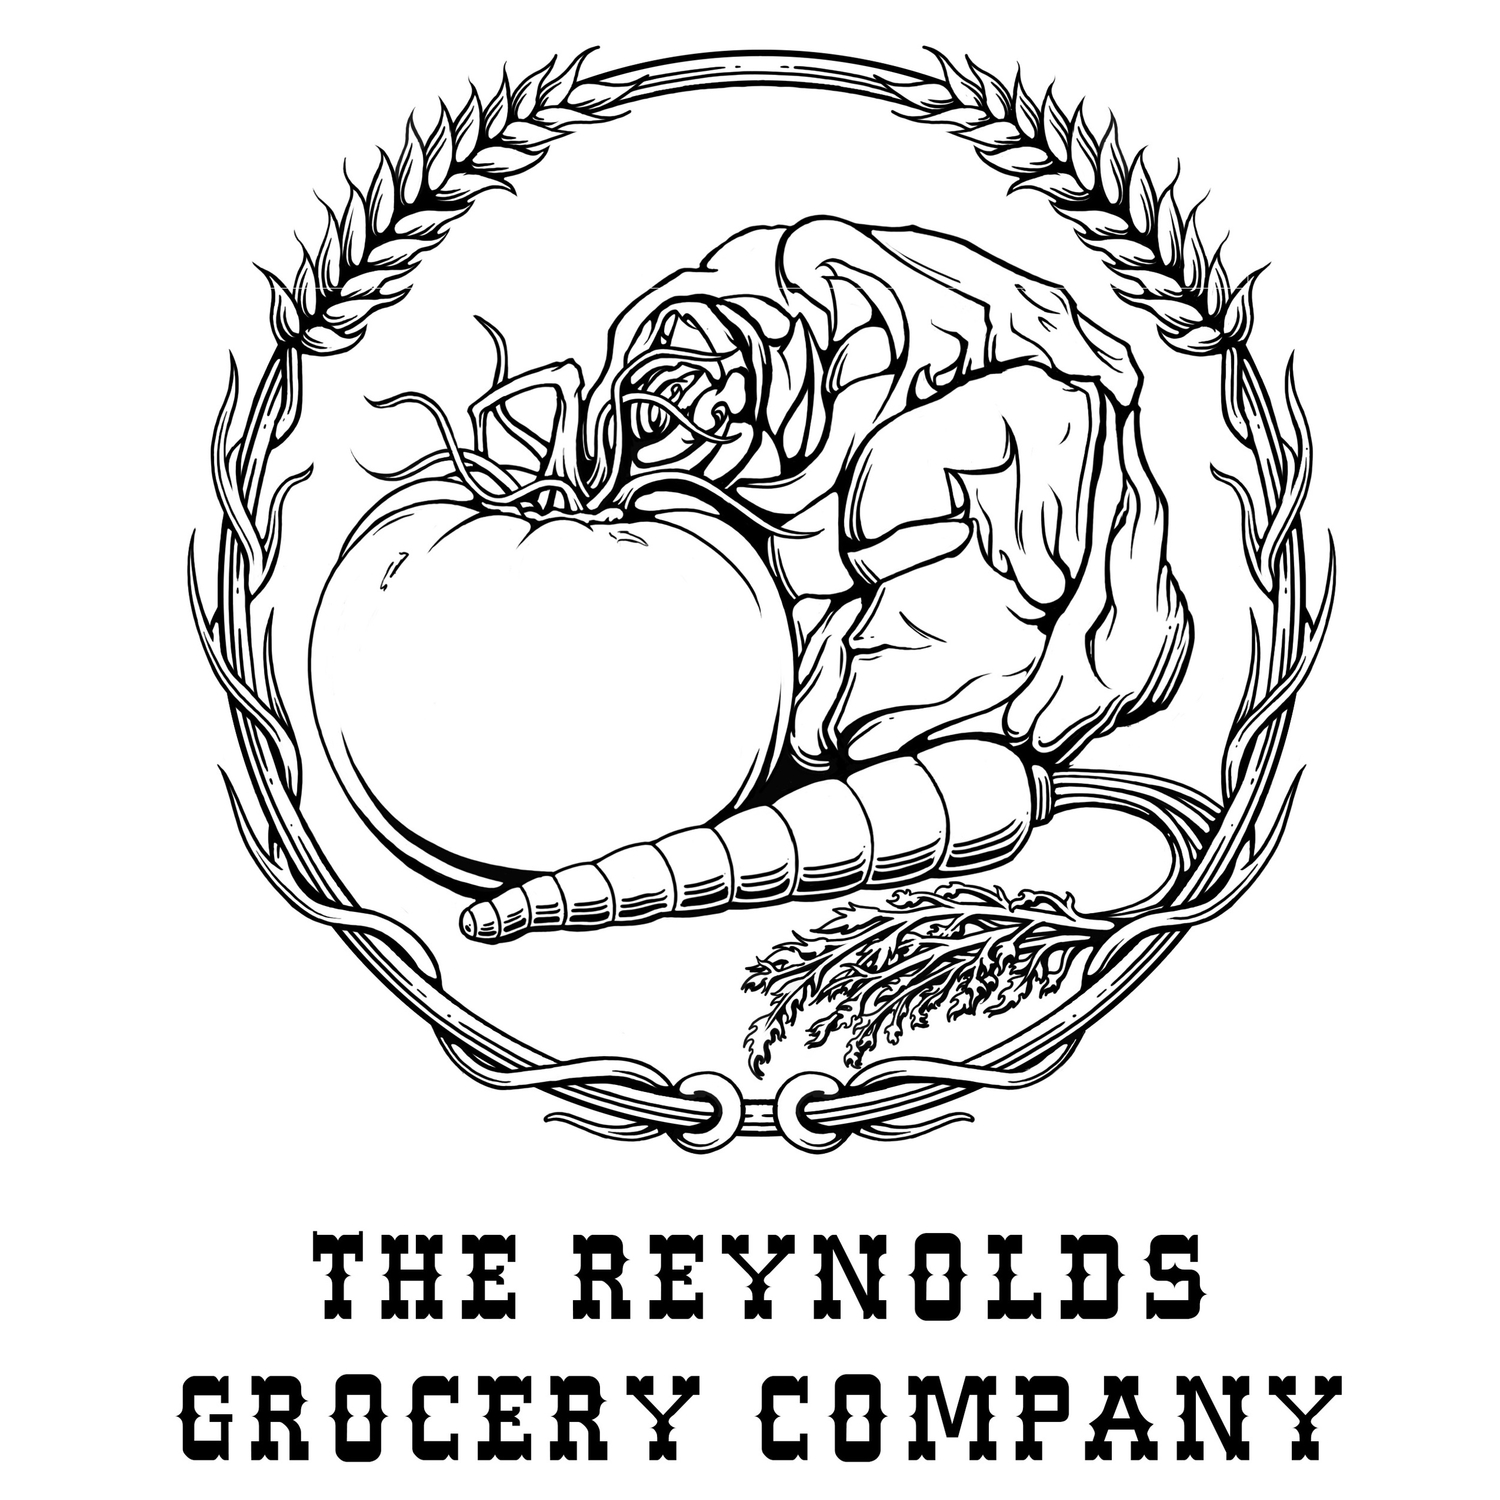 The Reynolds Grocery Company